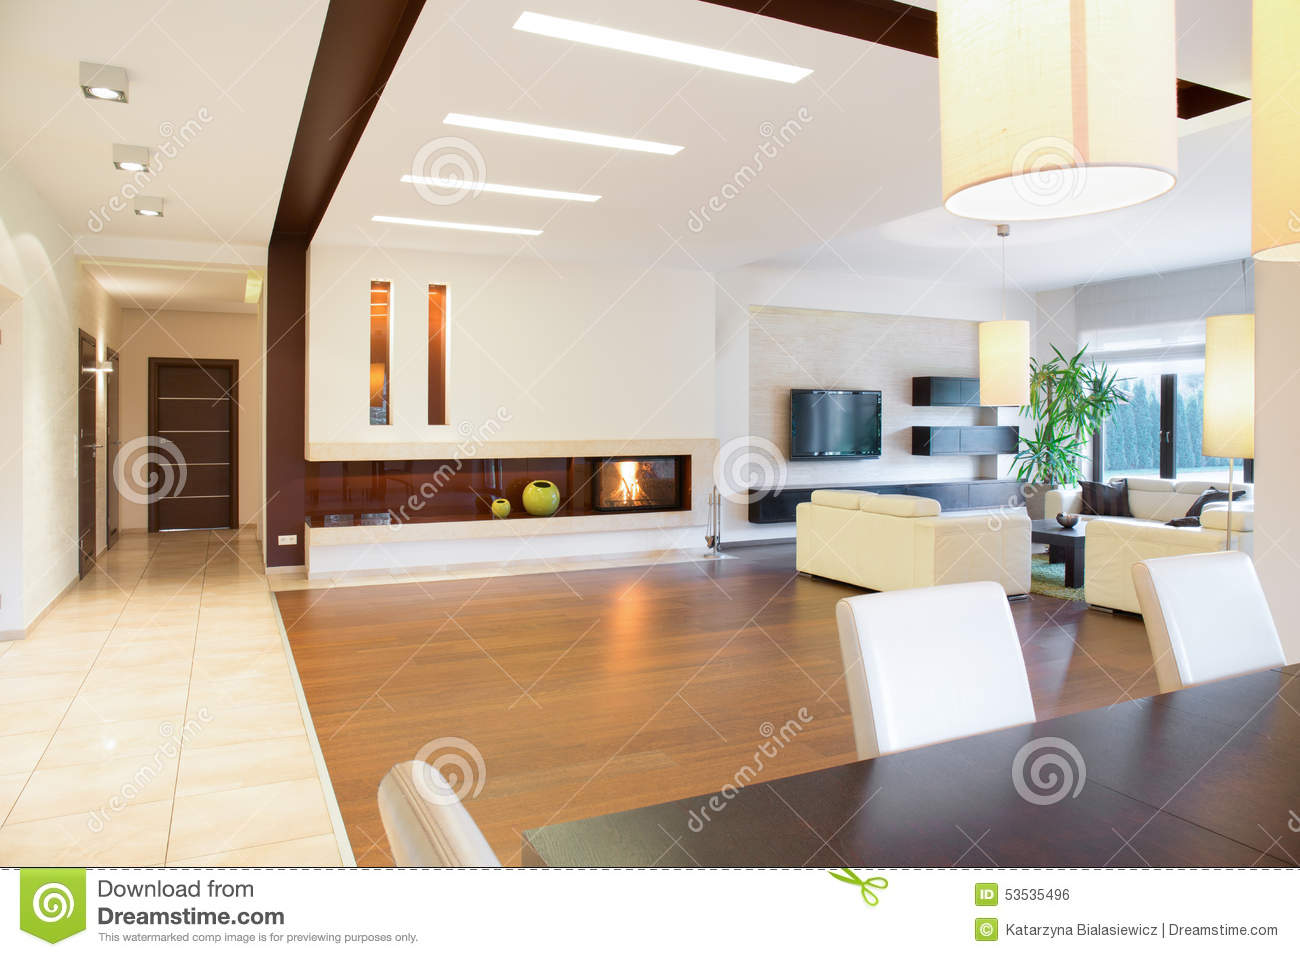 Maison moderne de parter photo stock   image: 53535496